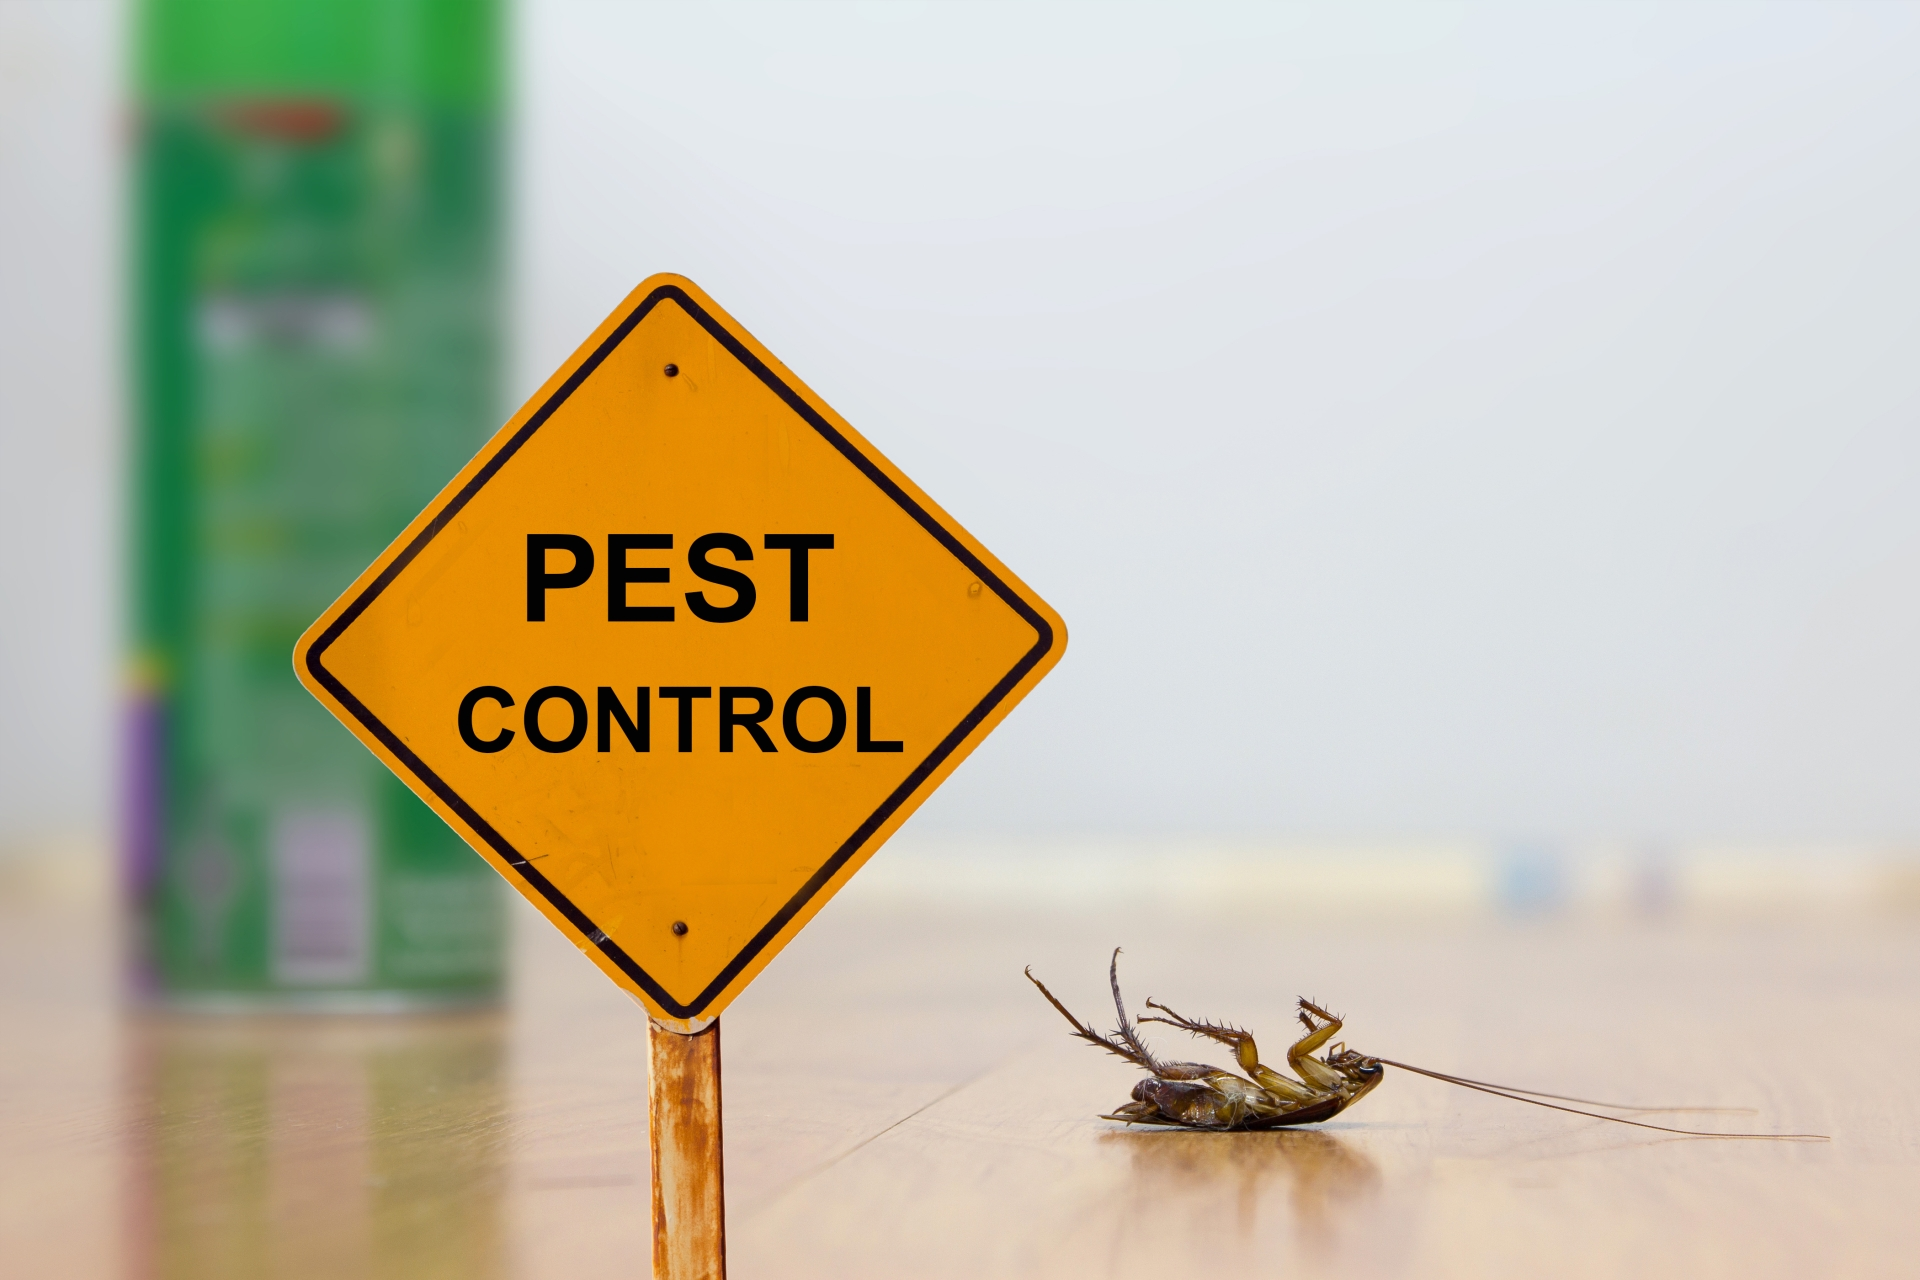 24 Hour Pest Control, Pest Control in Wembley Park, HA9. Call Now 020 8166 9746